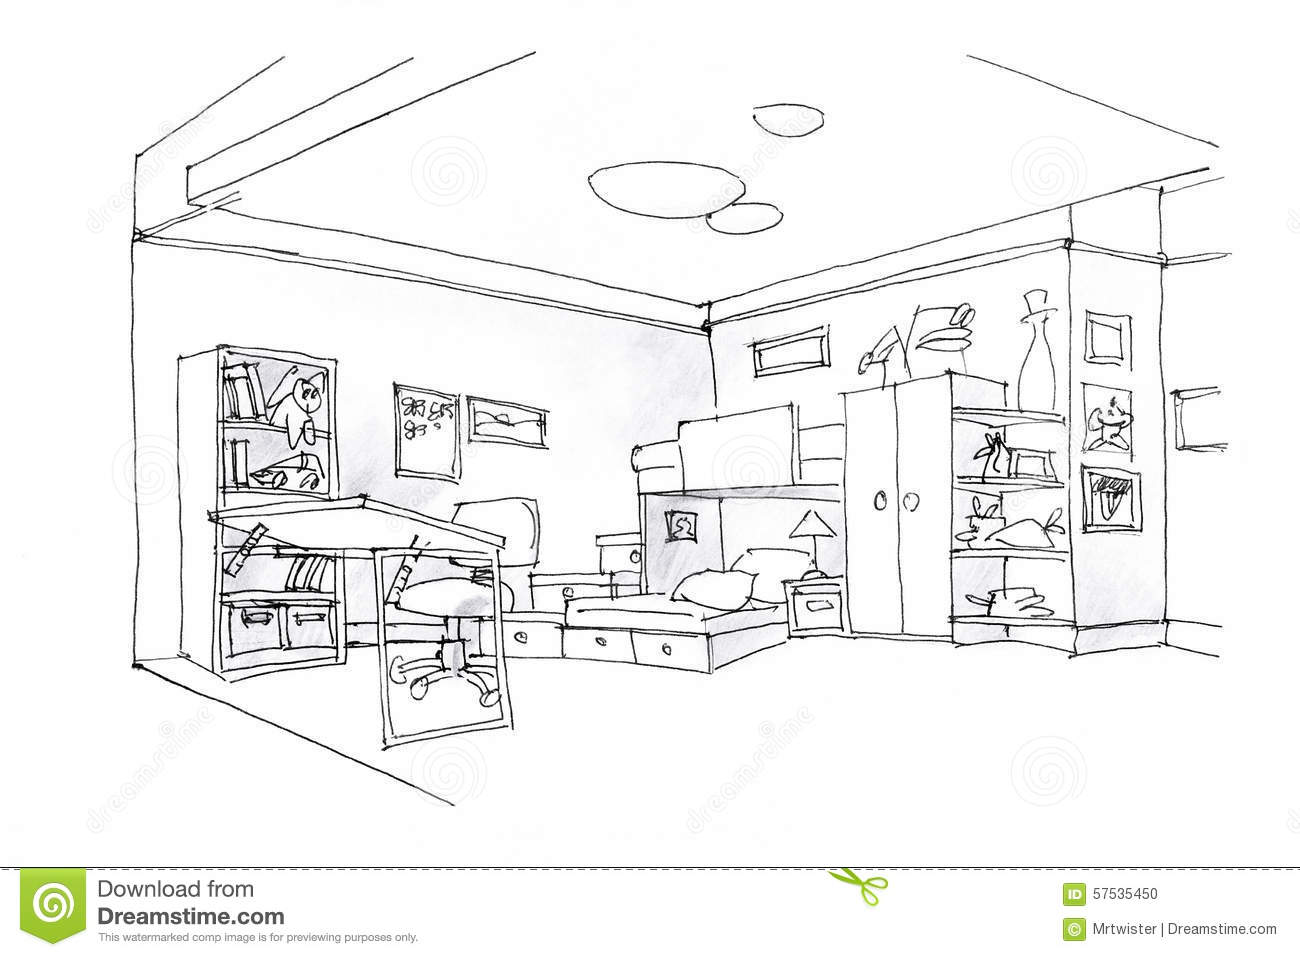 Kitchen And Bath Business 1. Image Result For Kitchen And Bath Business 1